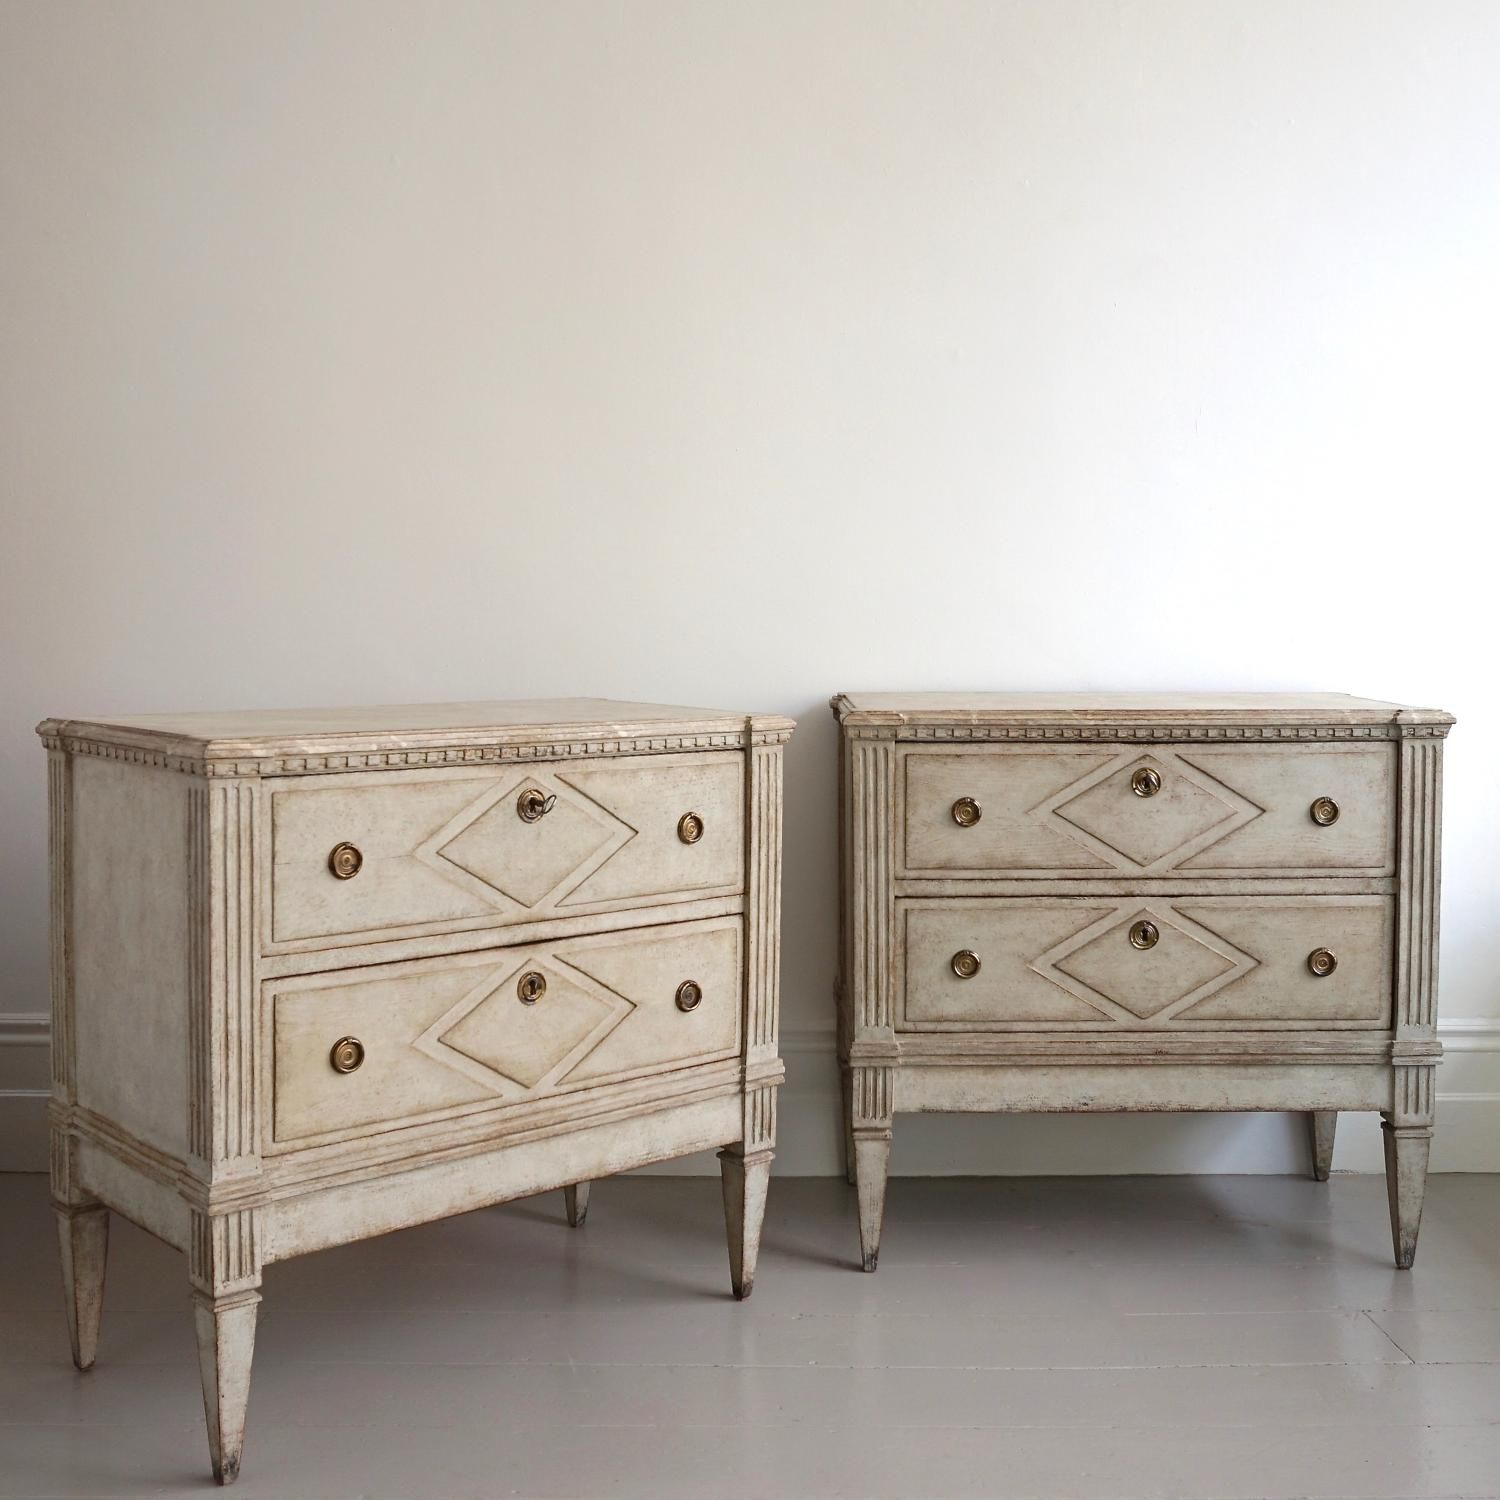 Best Pair Of Swedish Gustavian Bedside Chests In Antique 400 x 300